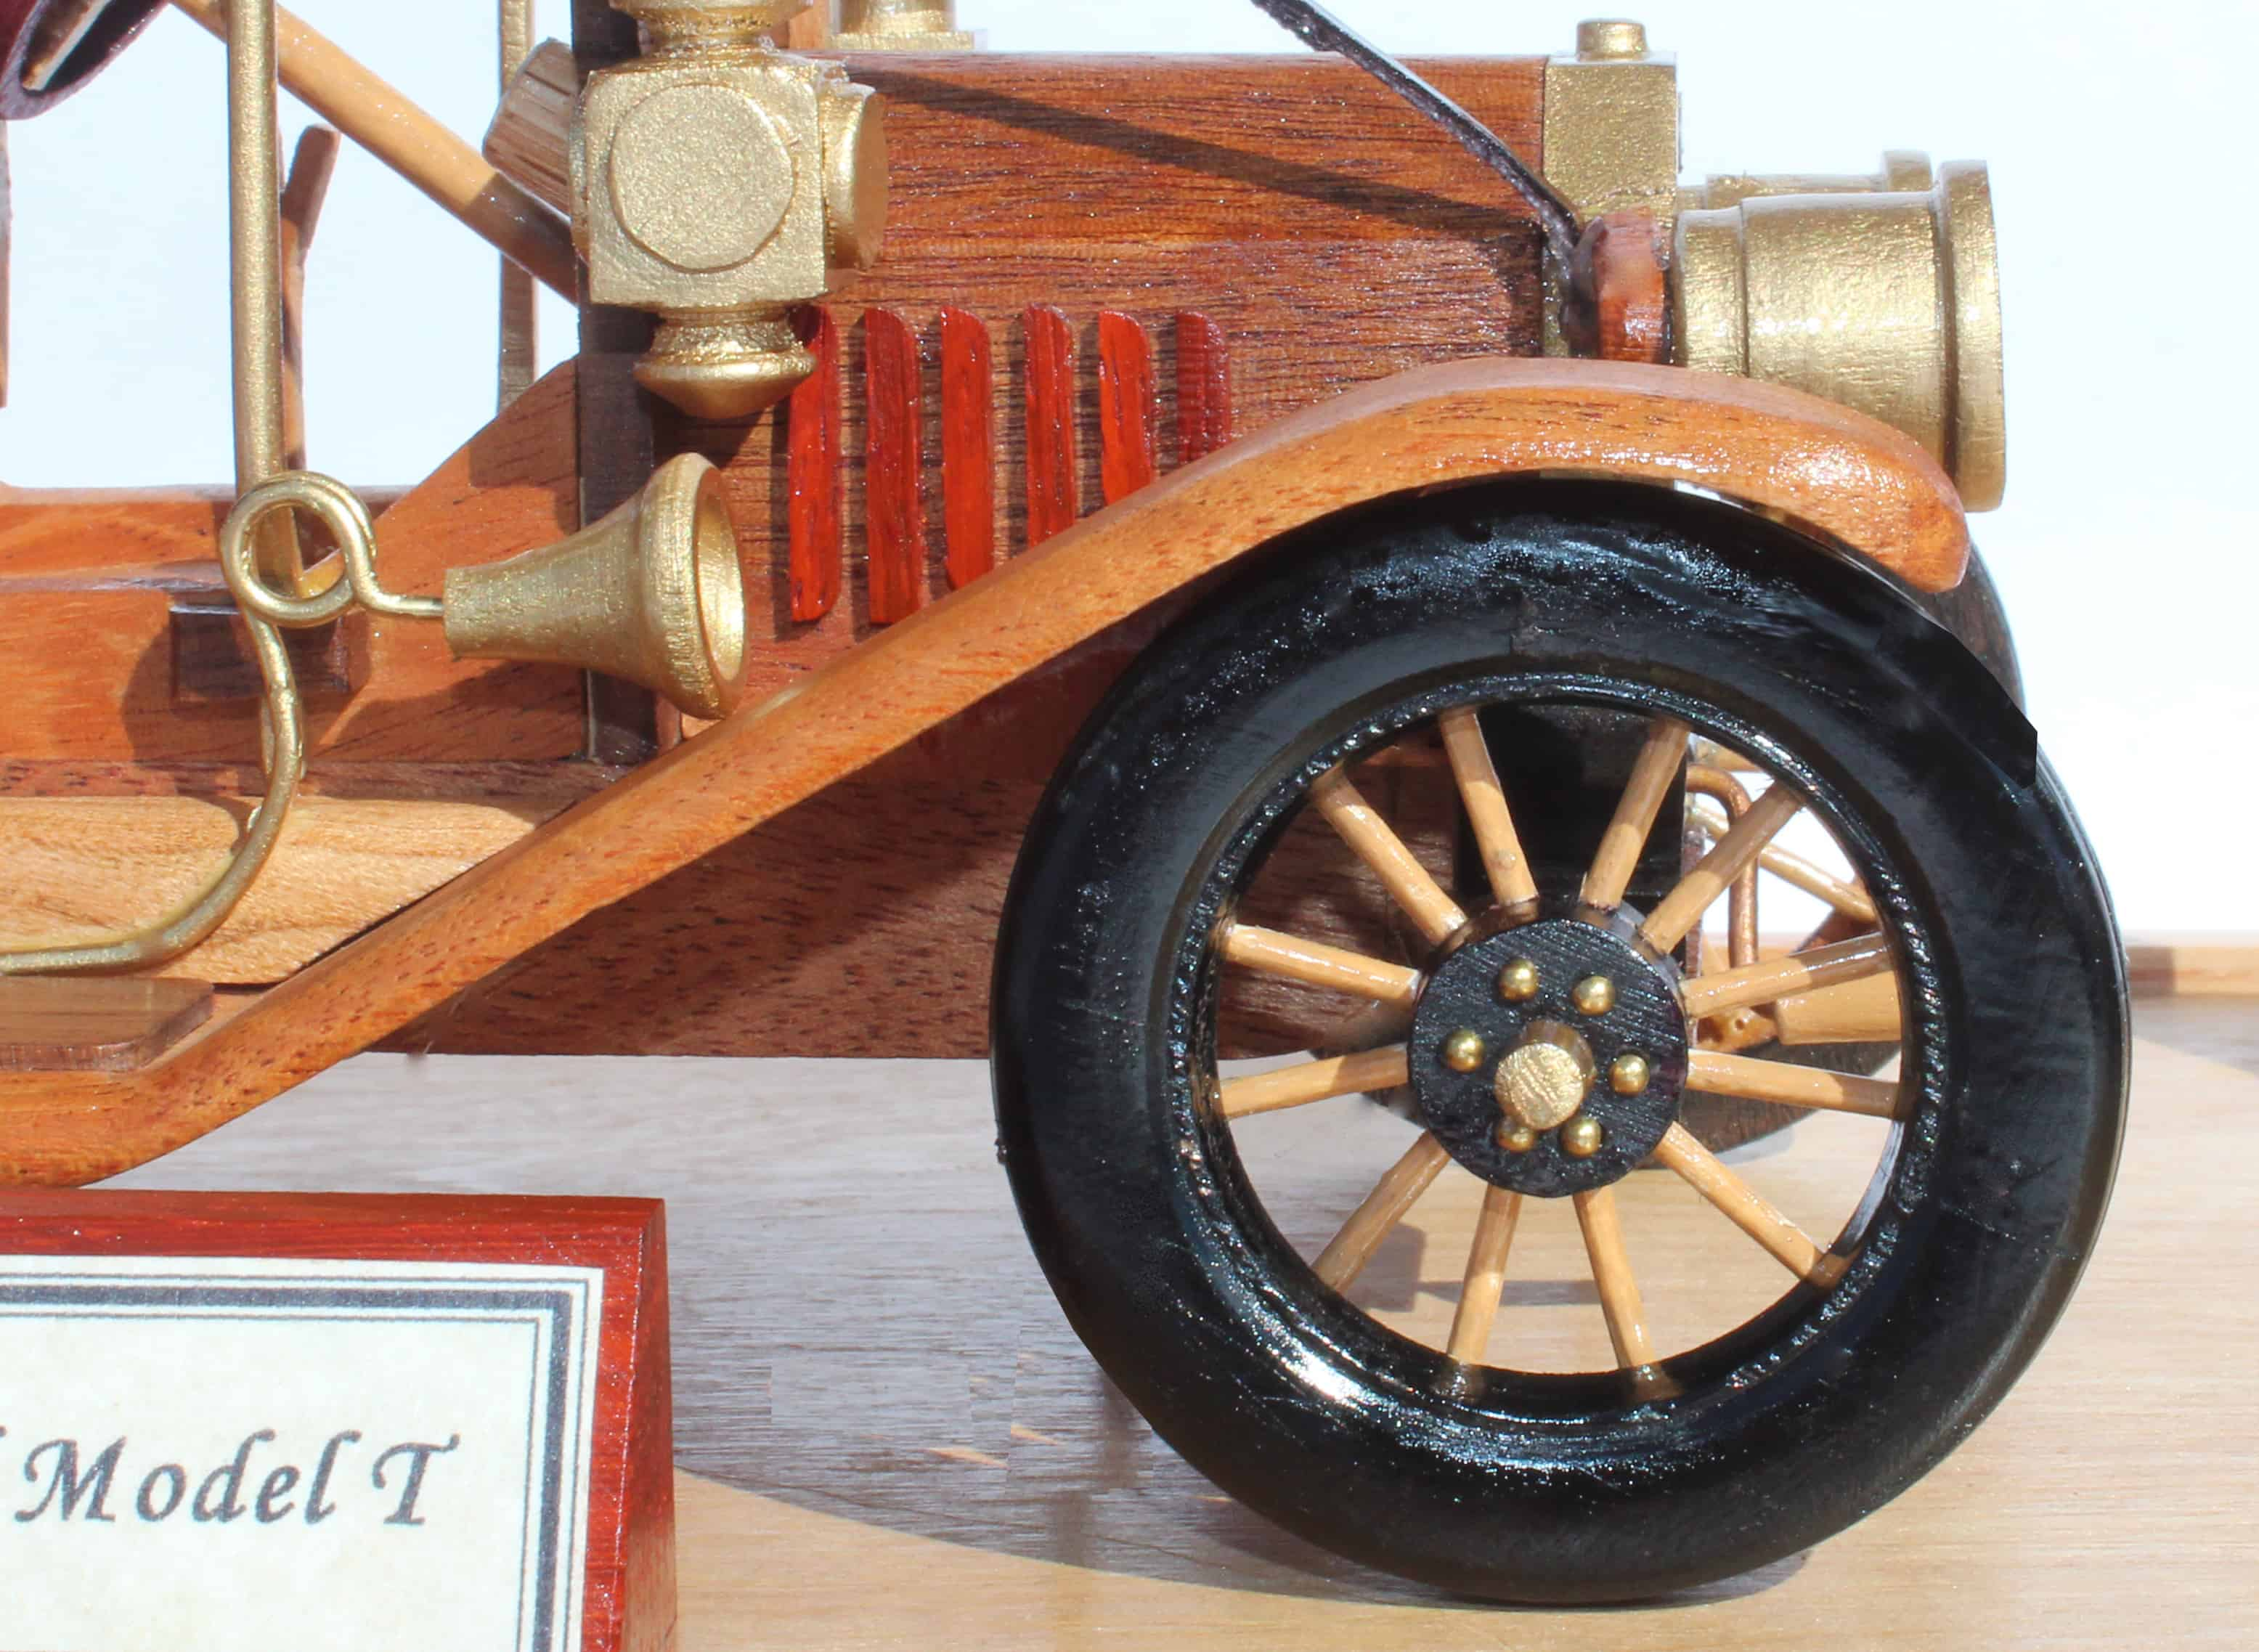 A woodworking plan for building the classic 1910 Ford Model T